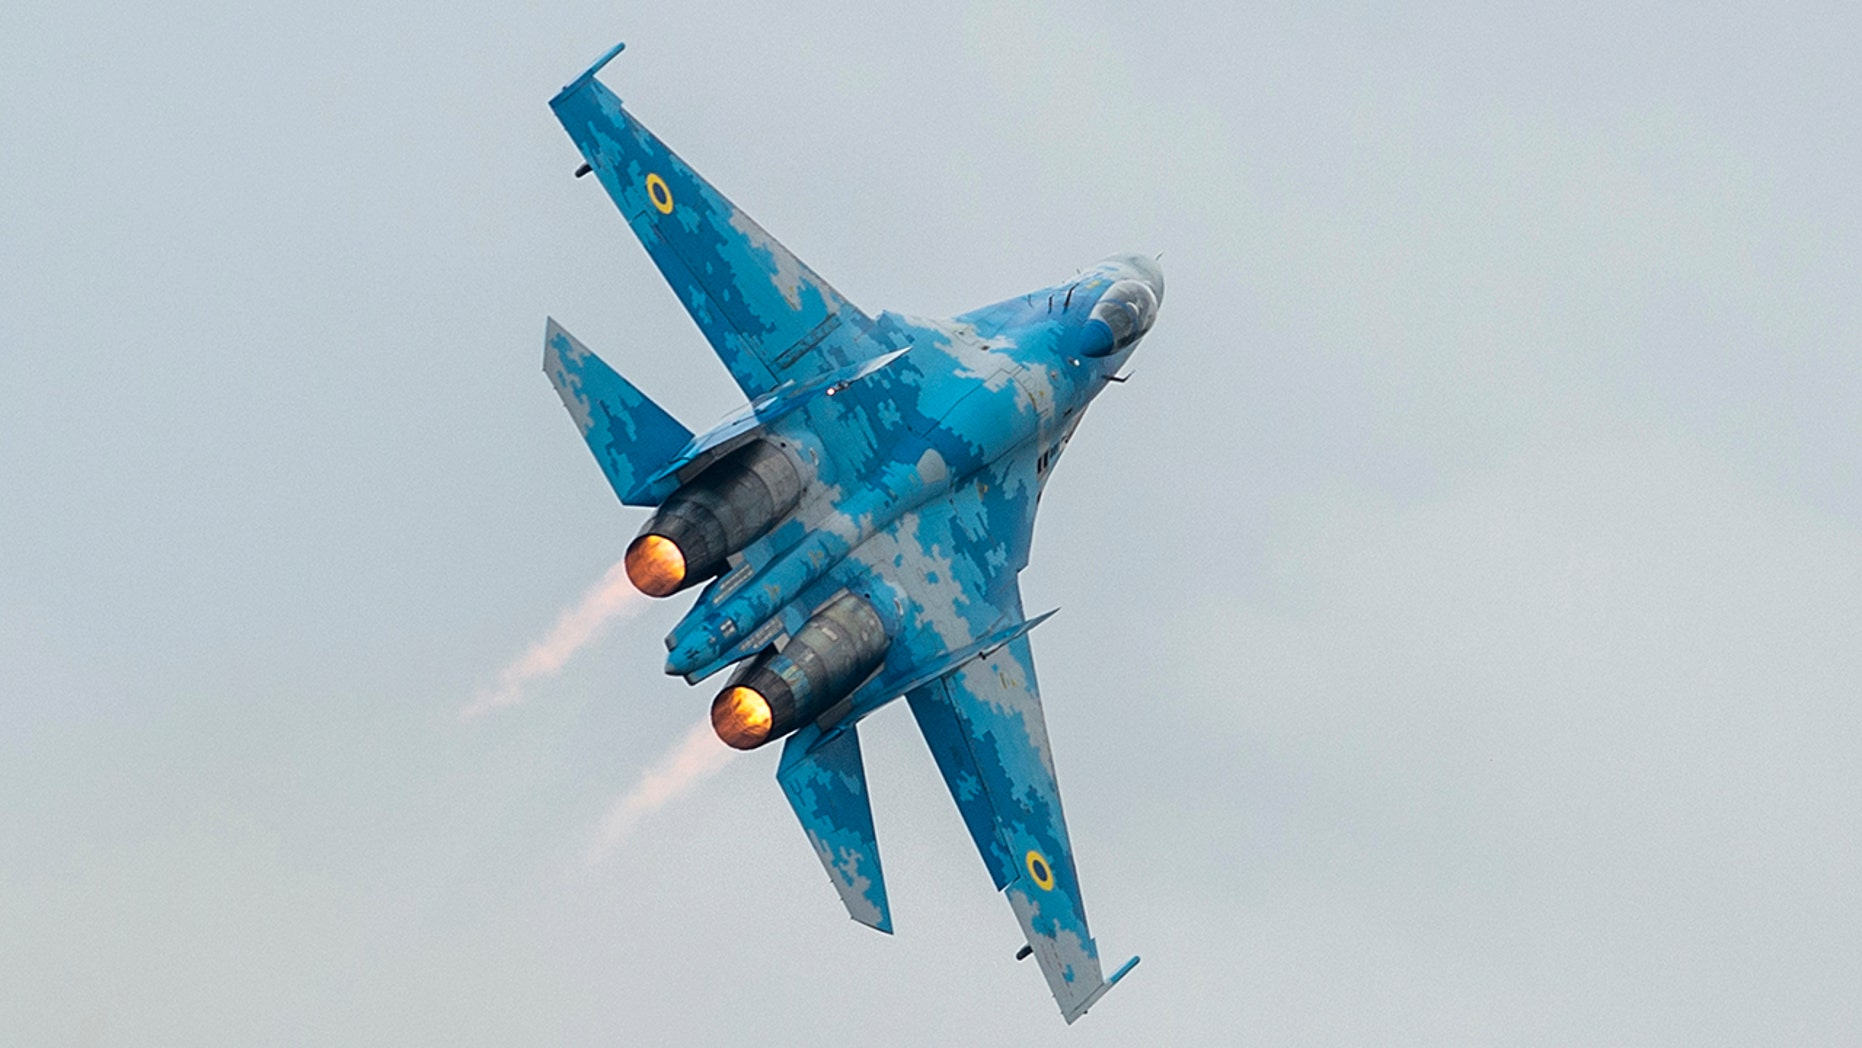 Two pilots killed in Ukraine fighter jet crash